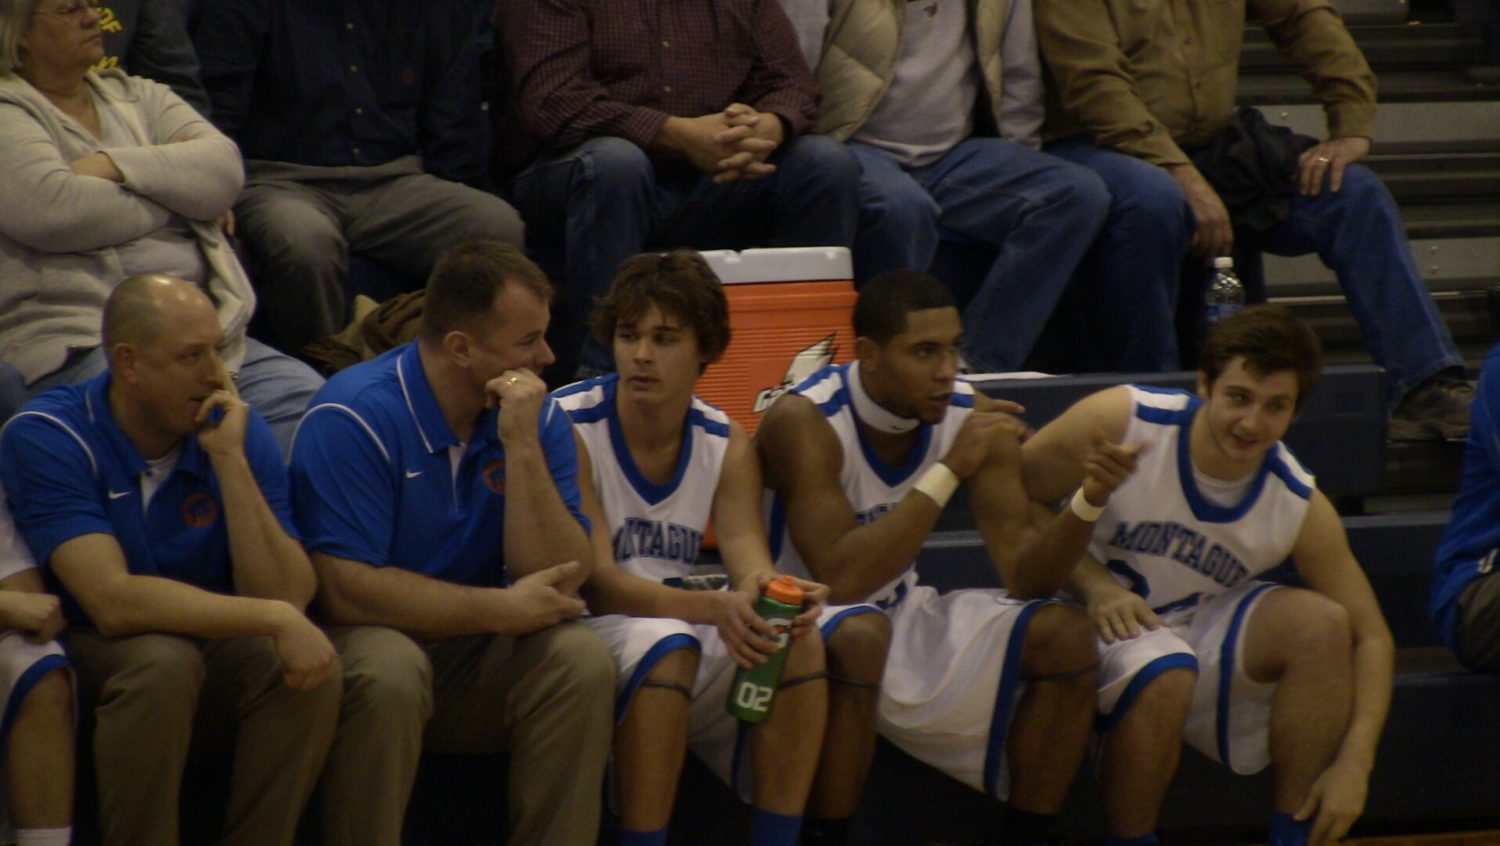 Brandon Moore's 1,000th point, one of many highlights in a standout career [VIDEO]